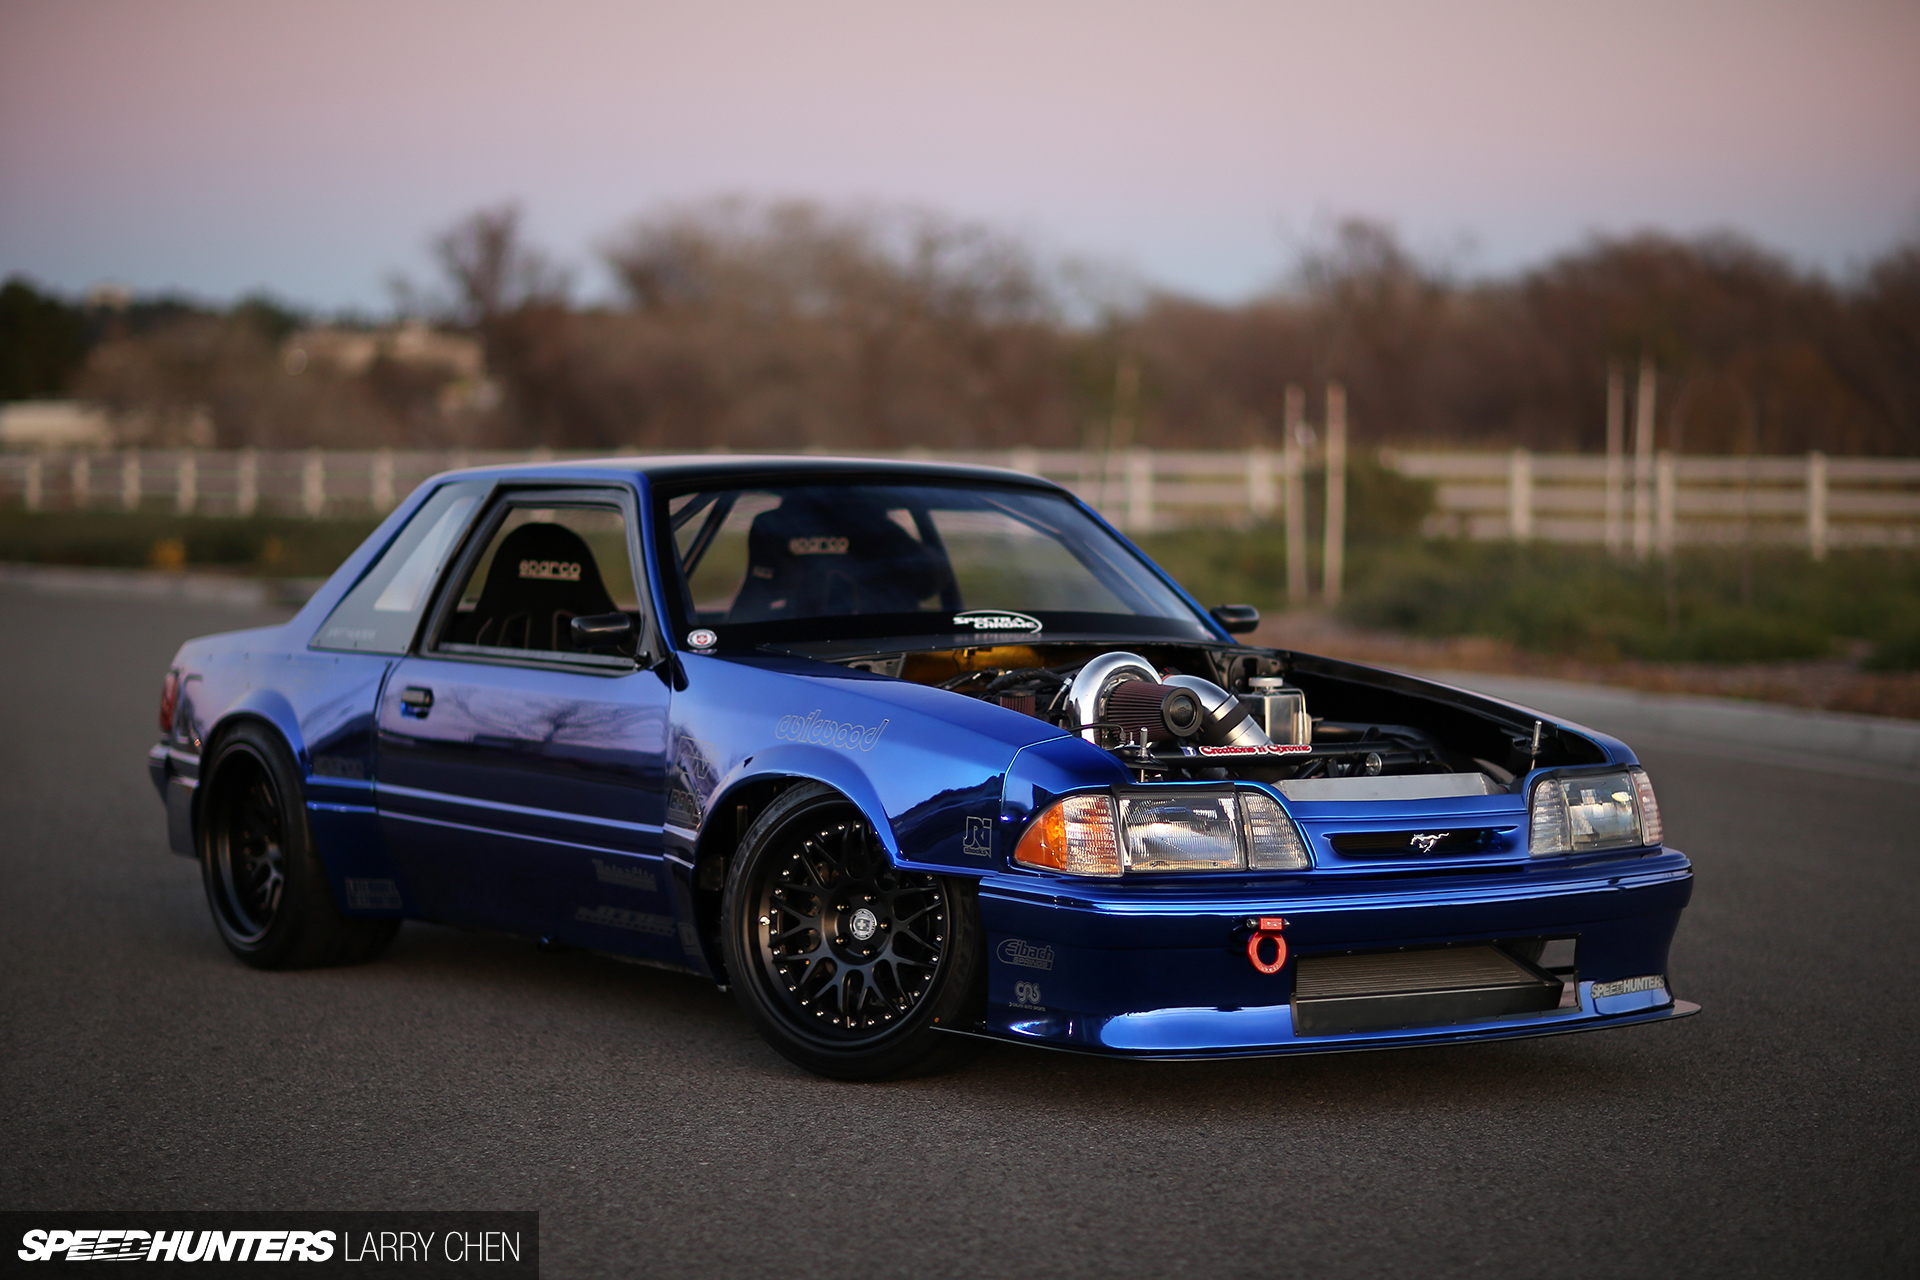 The Speedhunters Cars Of The Year 2013 10 2 Speedhunters